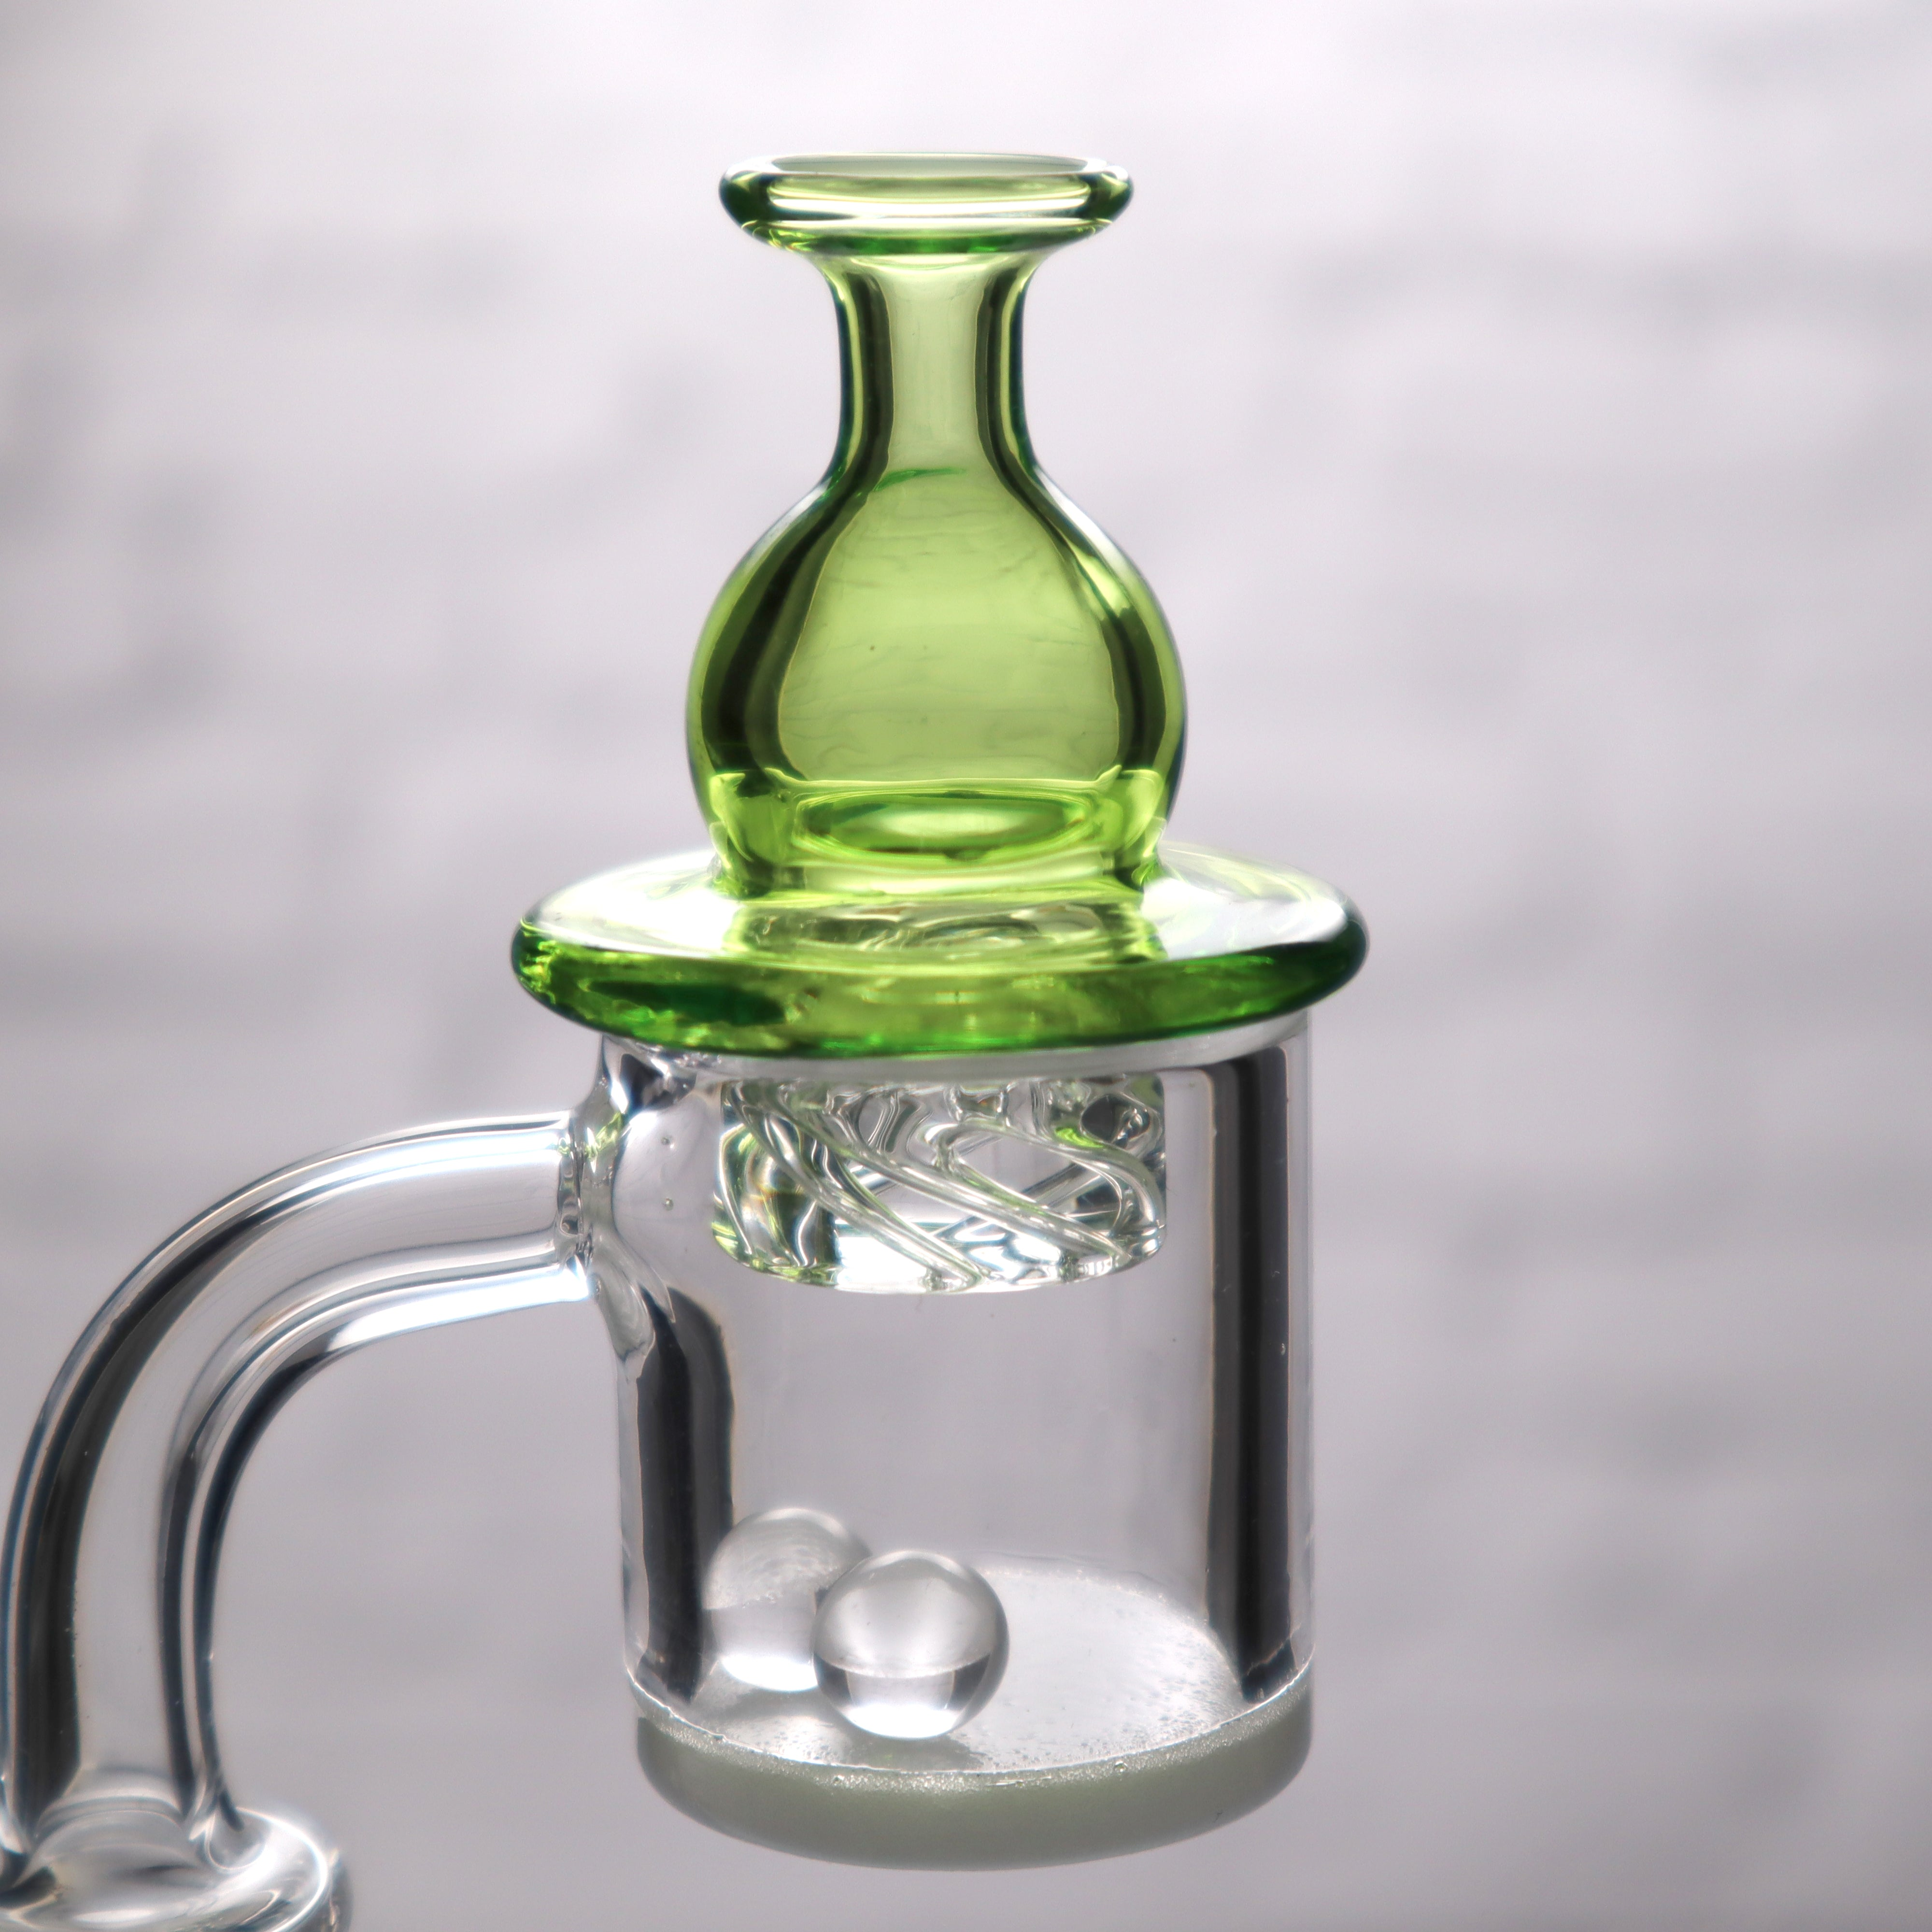 Vortex Carb Cap Spinning Action (Free Shipping)